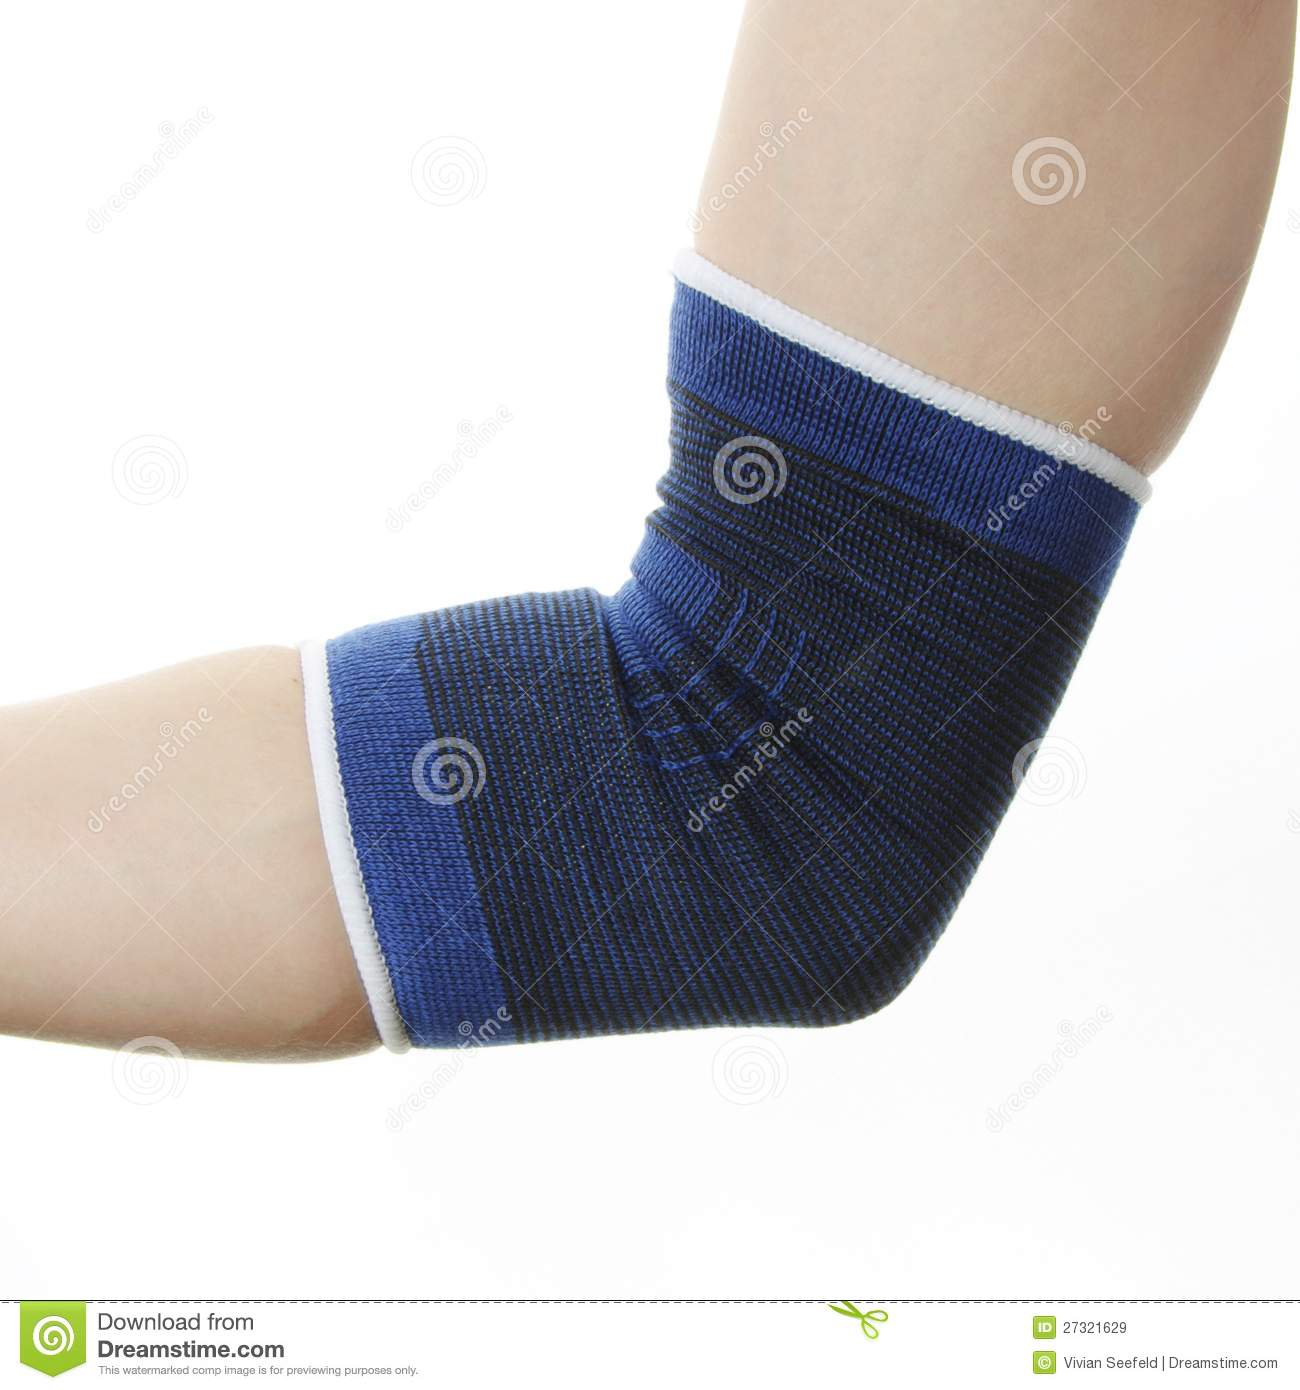 Shattered Elbow Recovery Time http://www.dreamstime.com/royalty-free-stock-images-medical-bandage-injury-elbow-image27321629